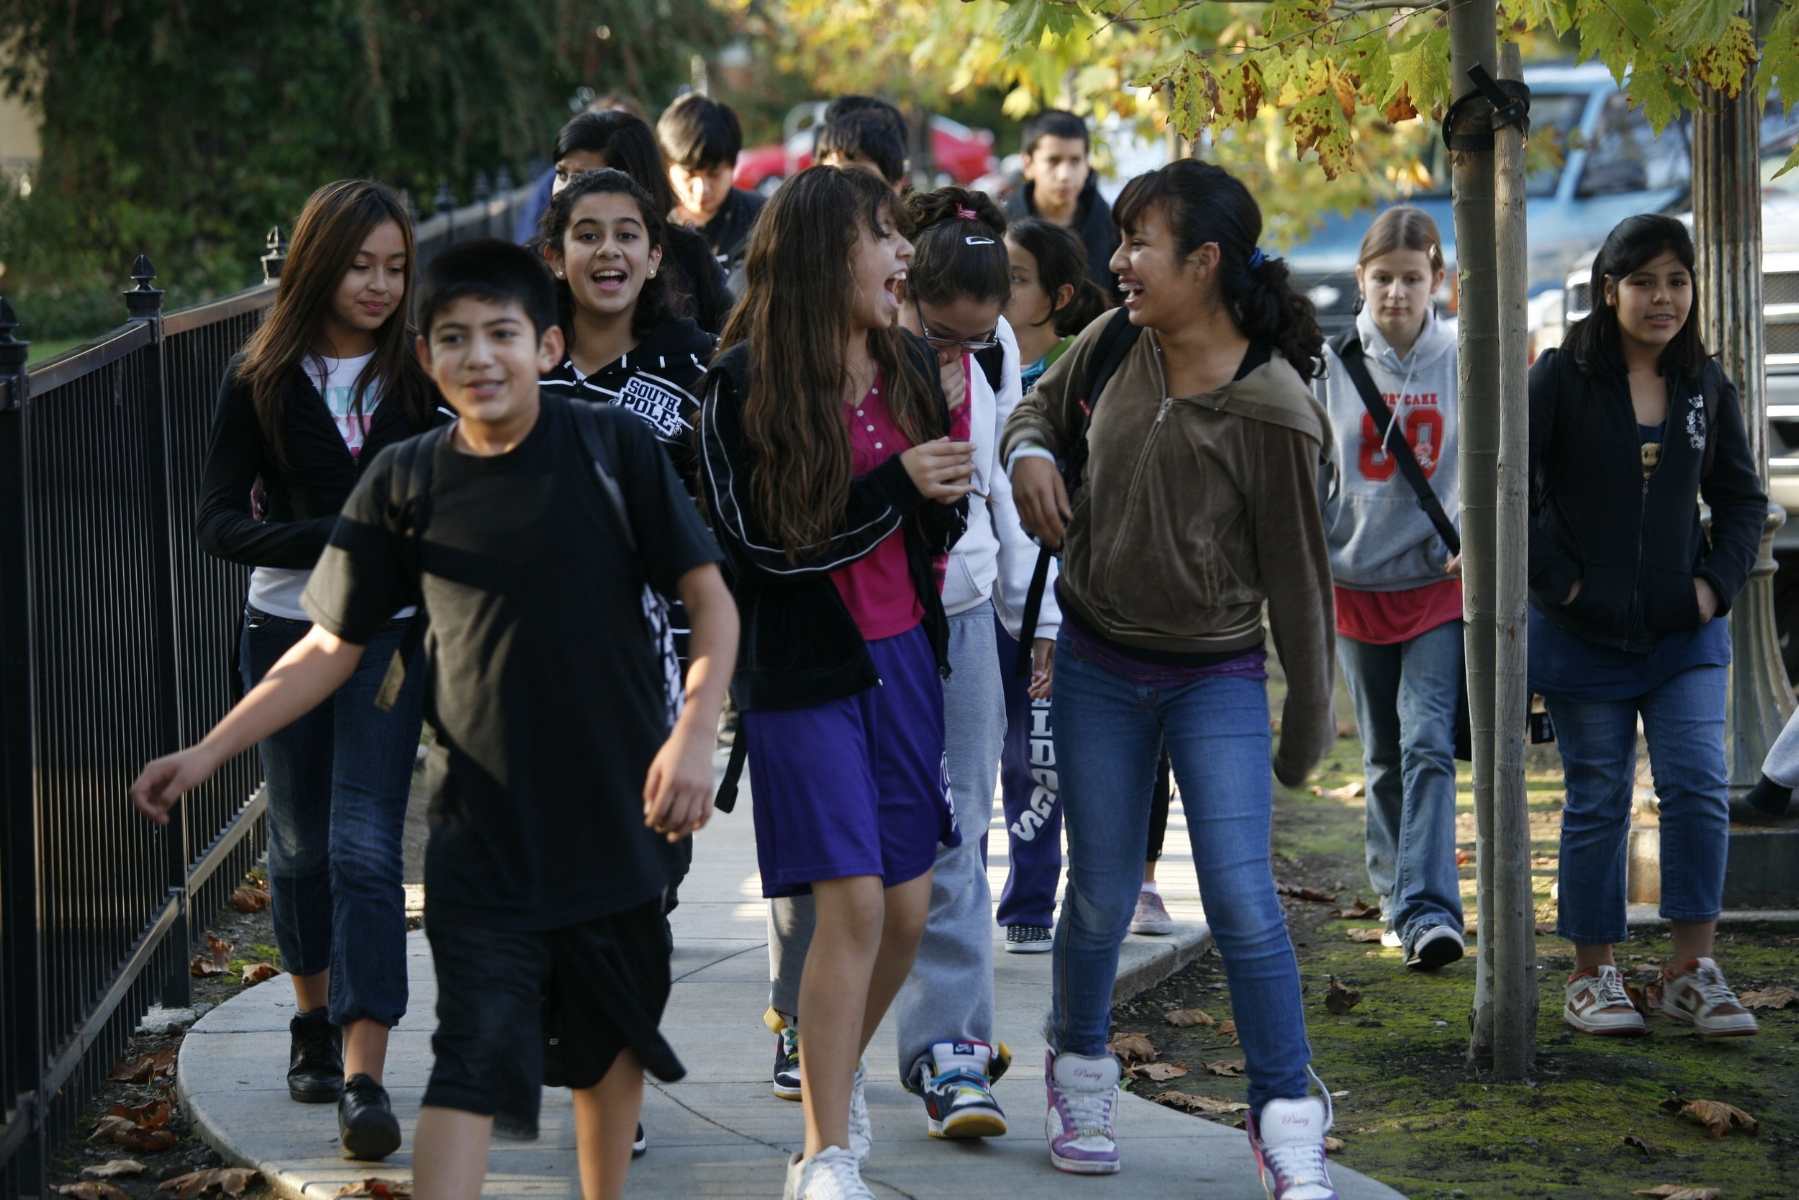 a group of students are walking on a sidewalk and looking like they are having fun.  two girls are the center of the composition.  the two are looking at each other and have big smiles. They are clearly friends and laughing together.